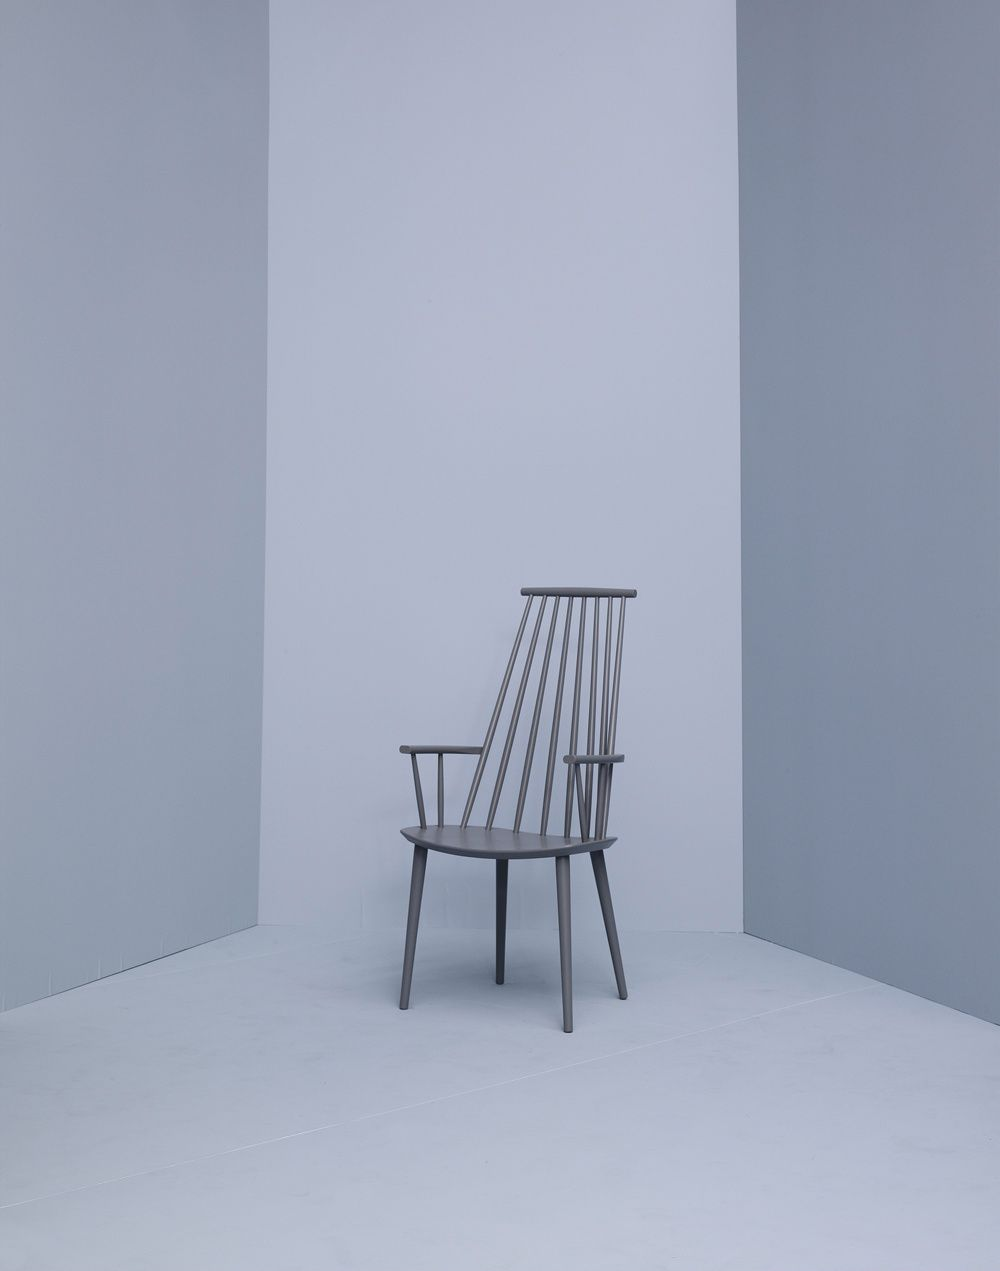 office chair conference dining scandinavian design aac22. Office Chair Conference Dining Scandinavian Design Aac22. HAY Danish Furniture Aac22 C